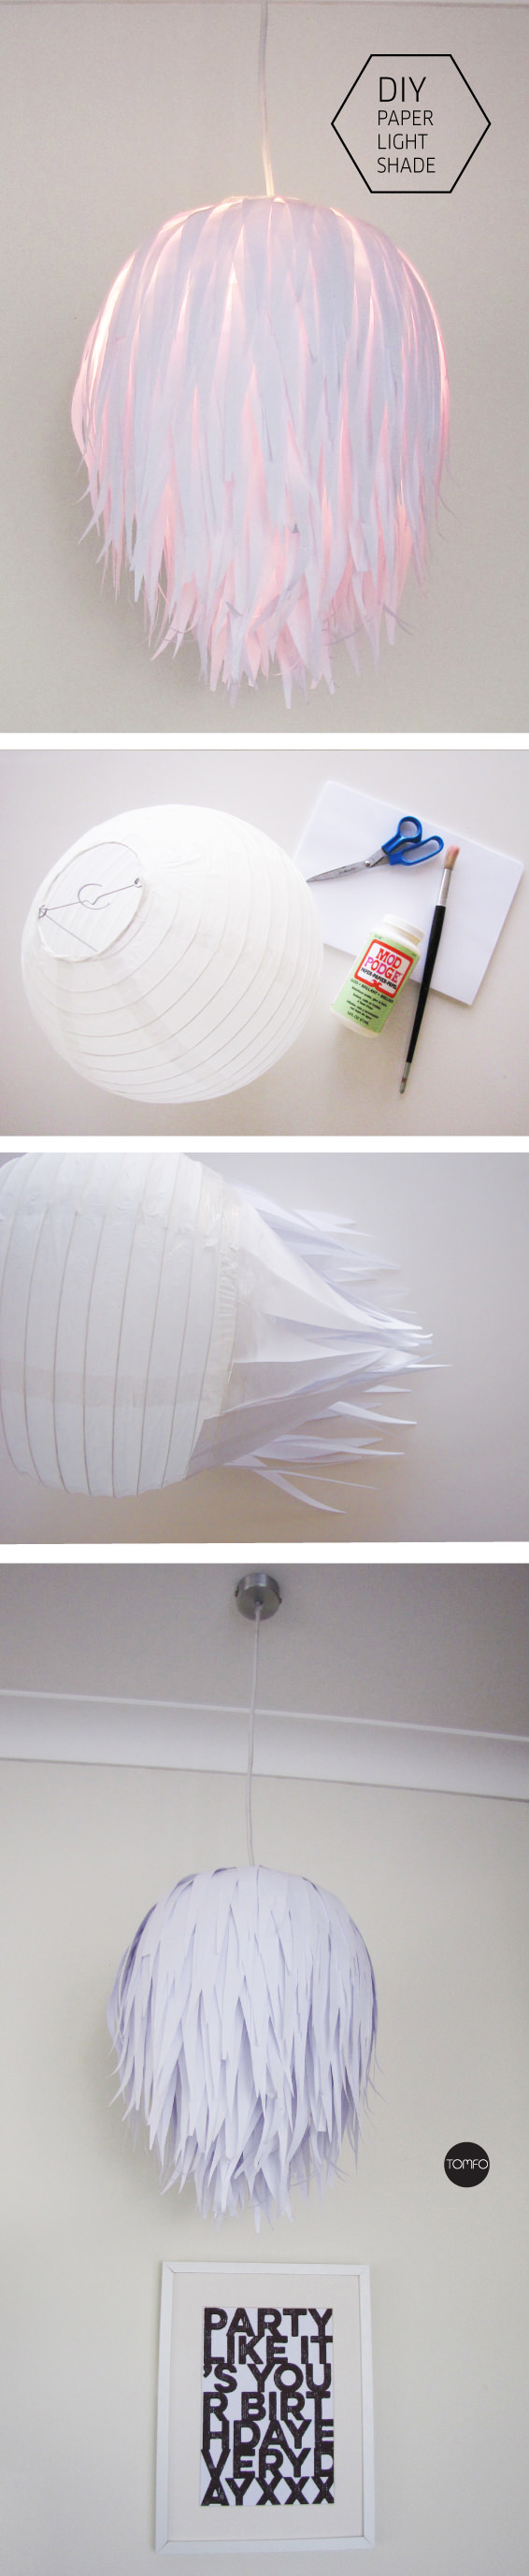 TOMFO-DIYPAPER-LIGHT-SHADE